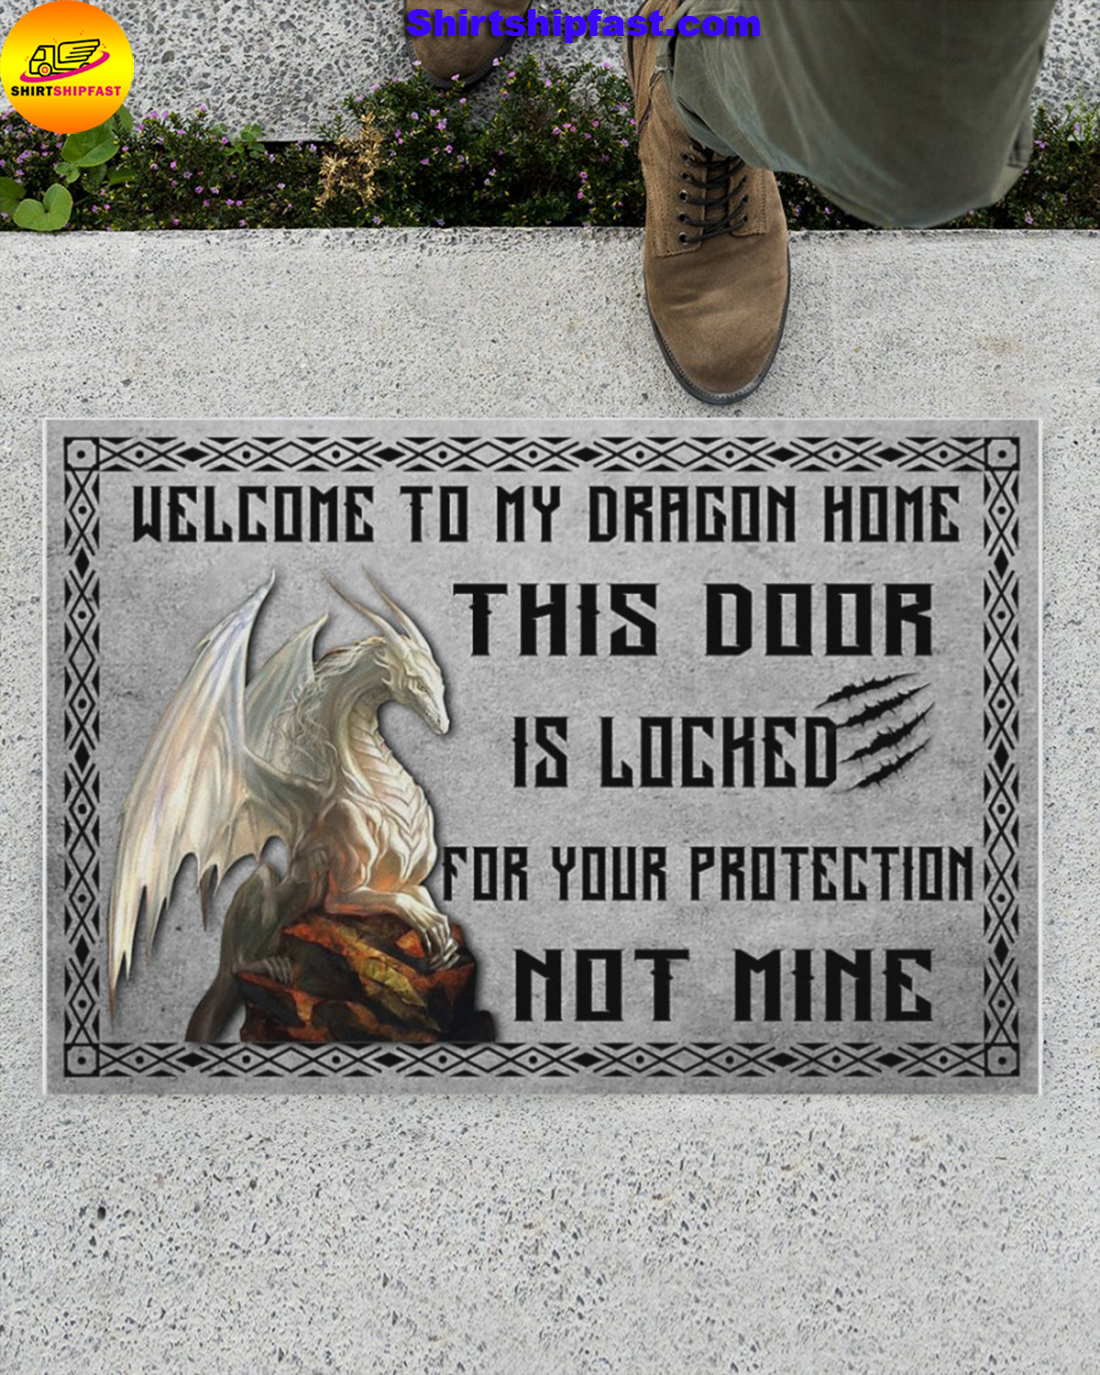 Welcome to my dragon home this door is locked for your protection not mine doormat